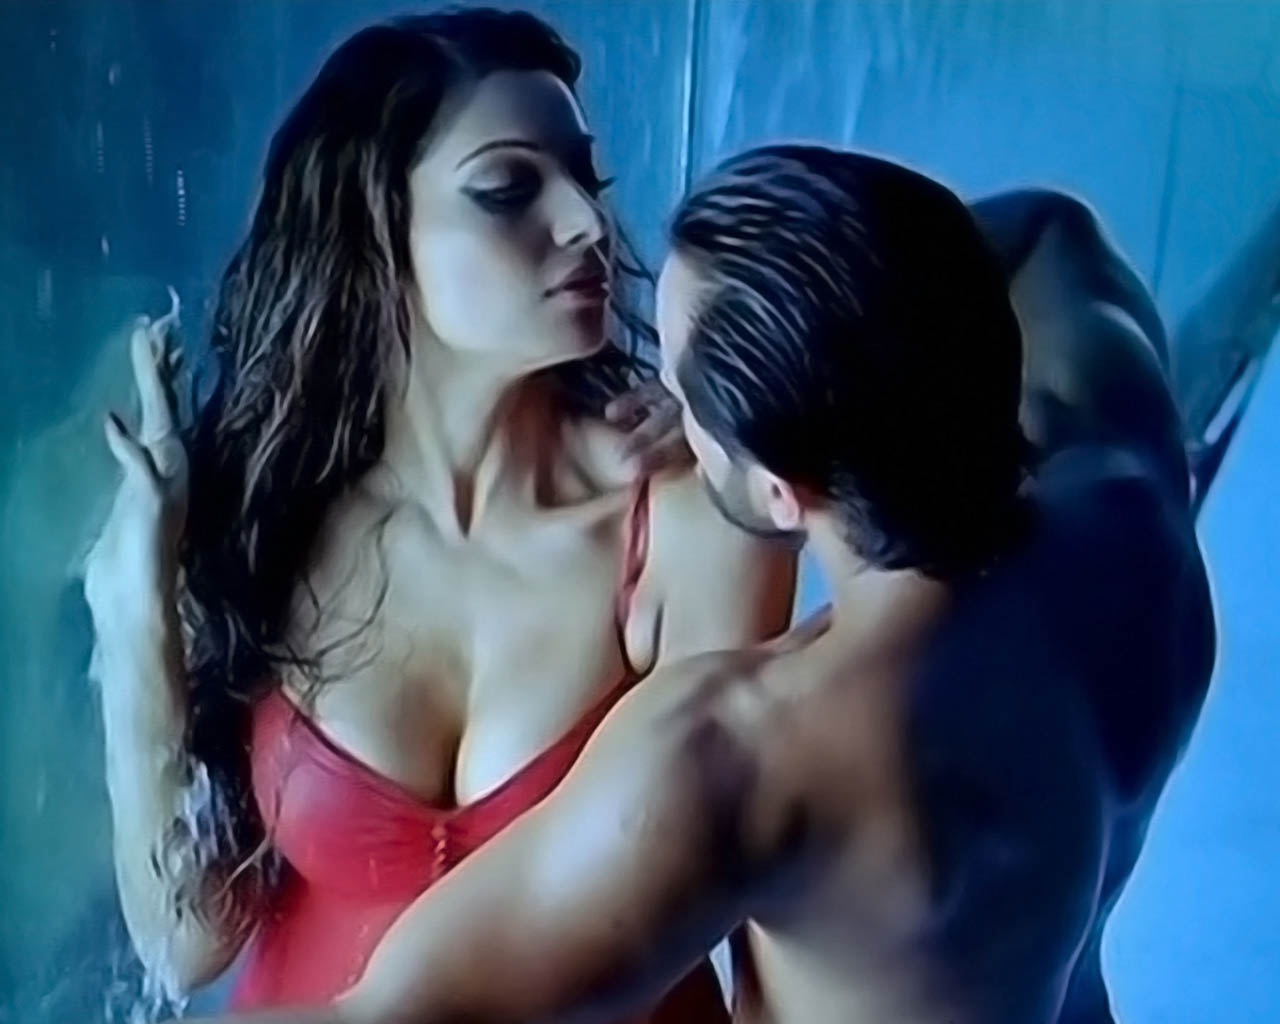 Naked bipasha in oral sex apologise, but